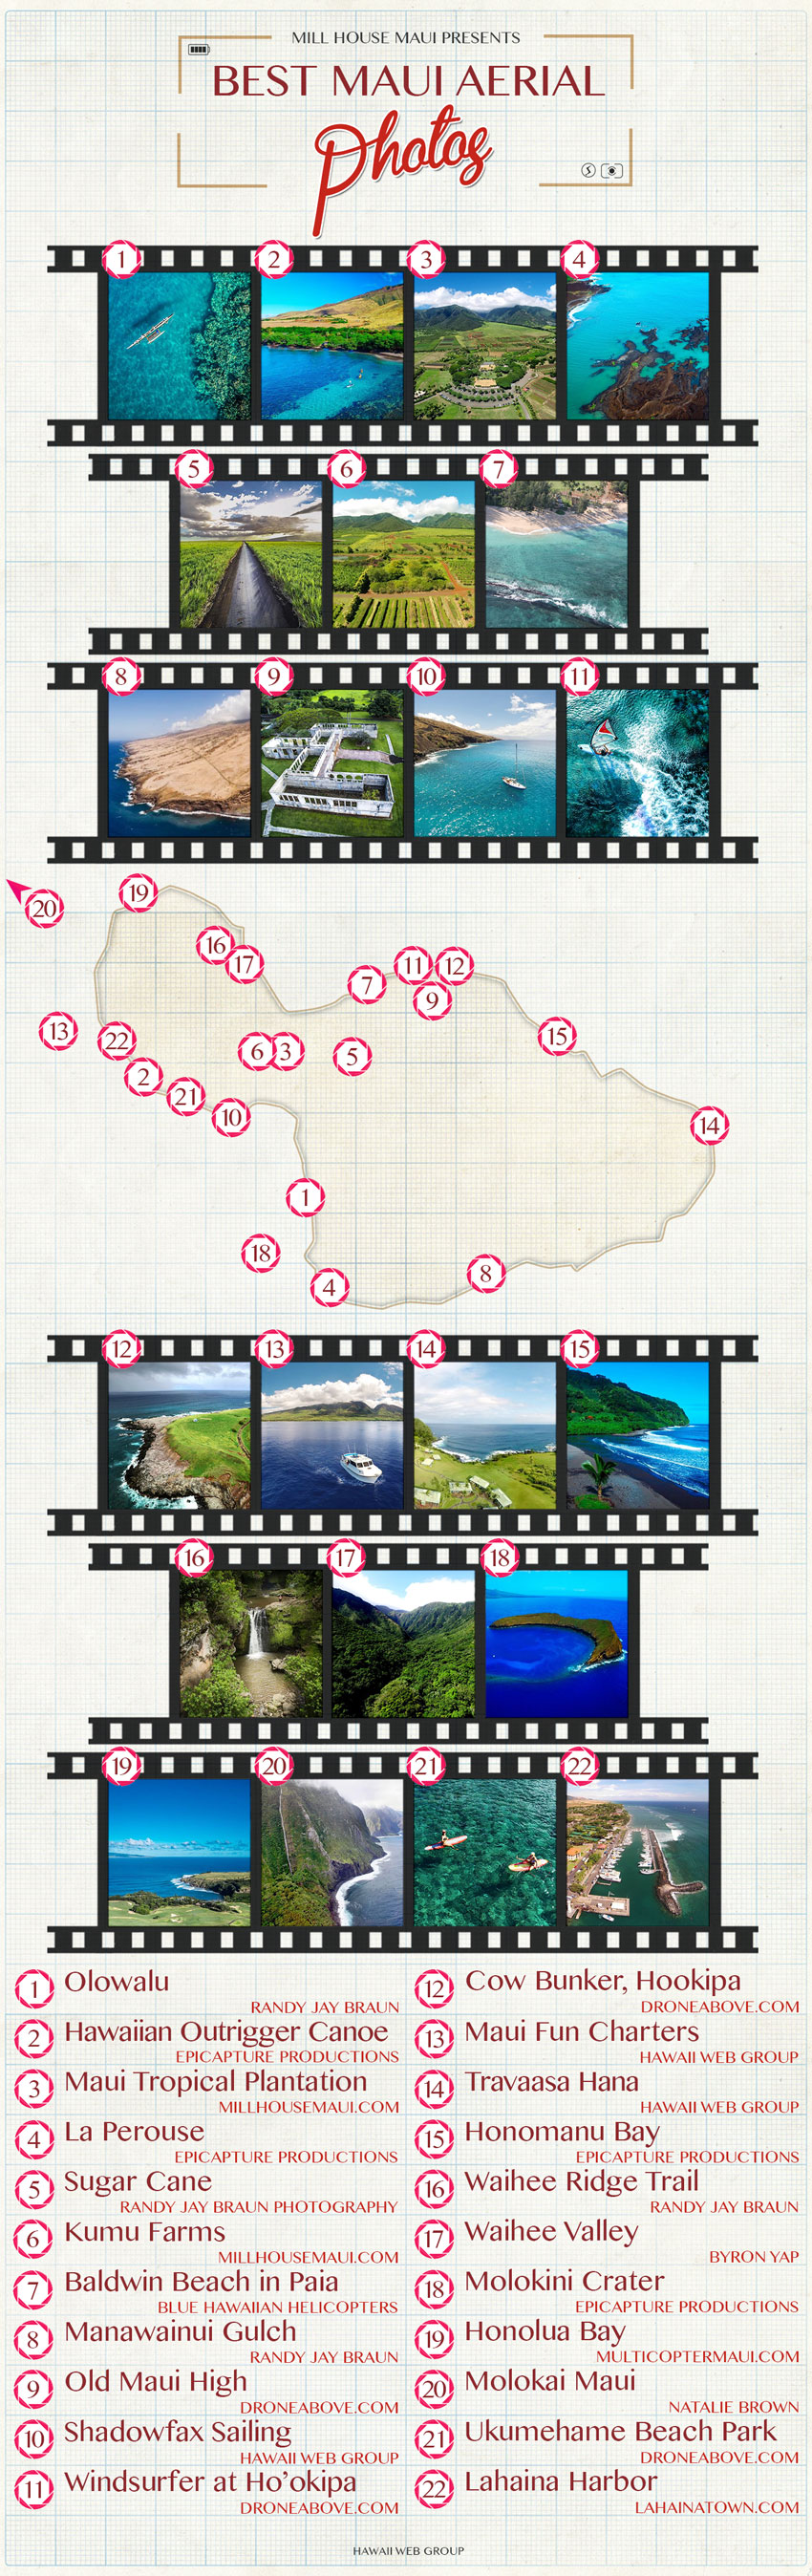 best maui aerial photos infographic